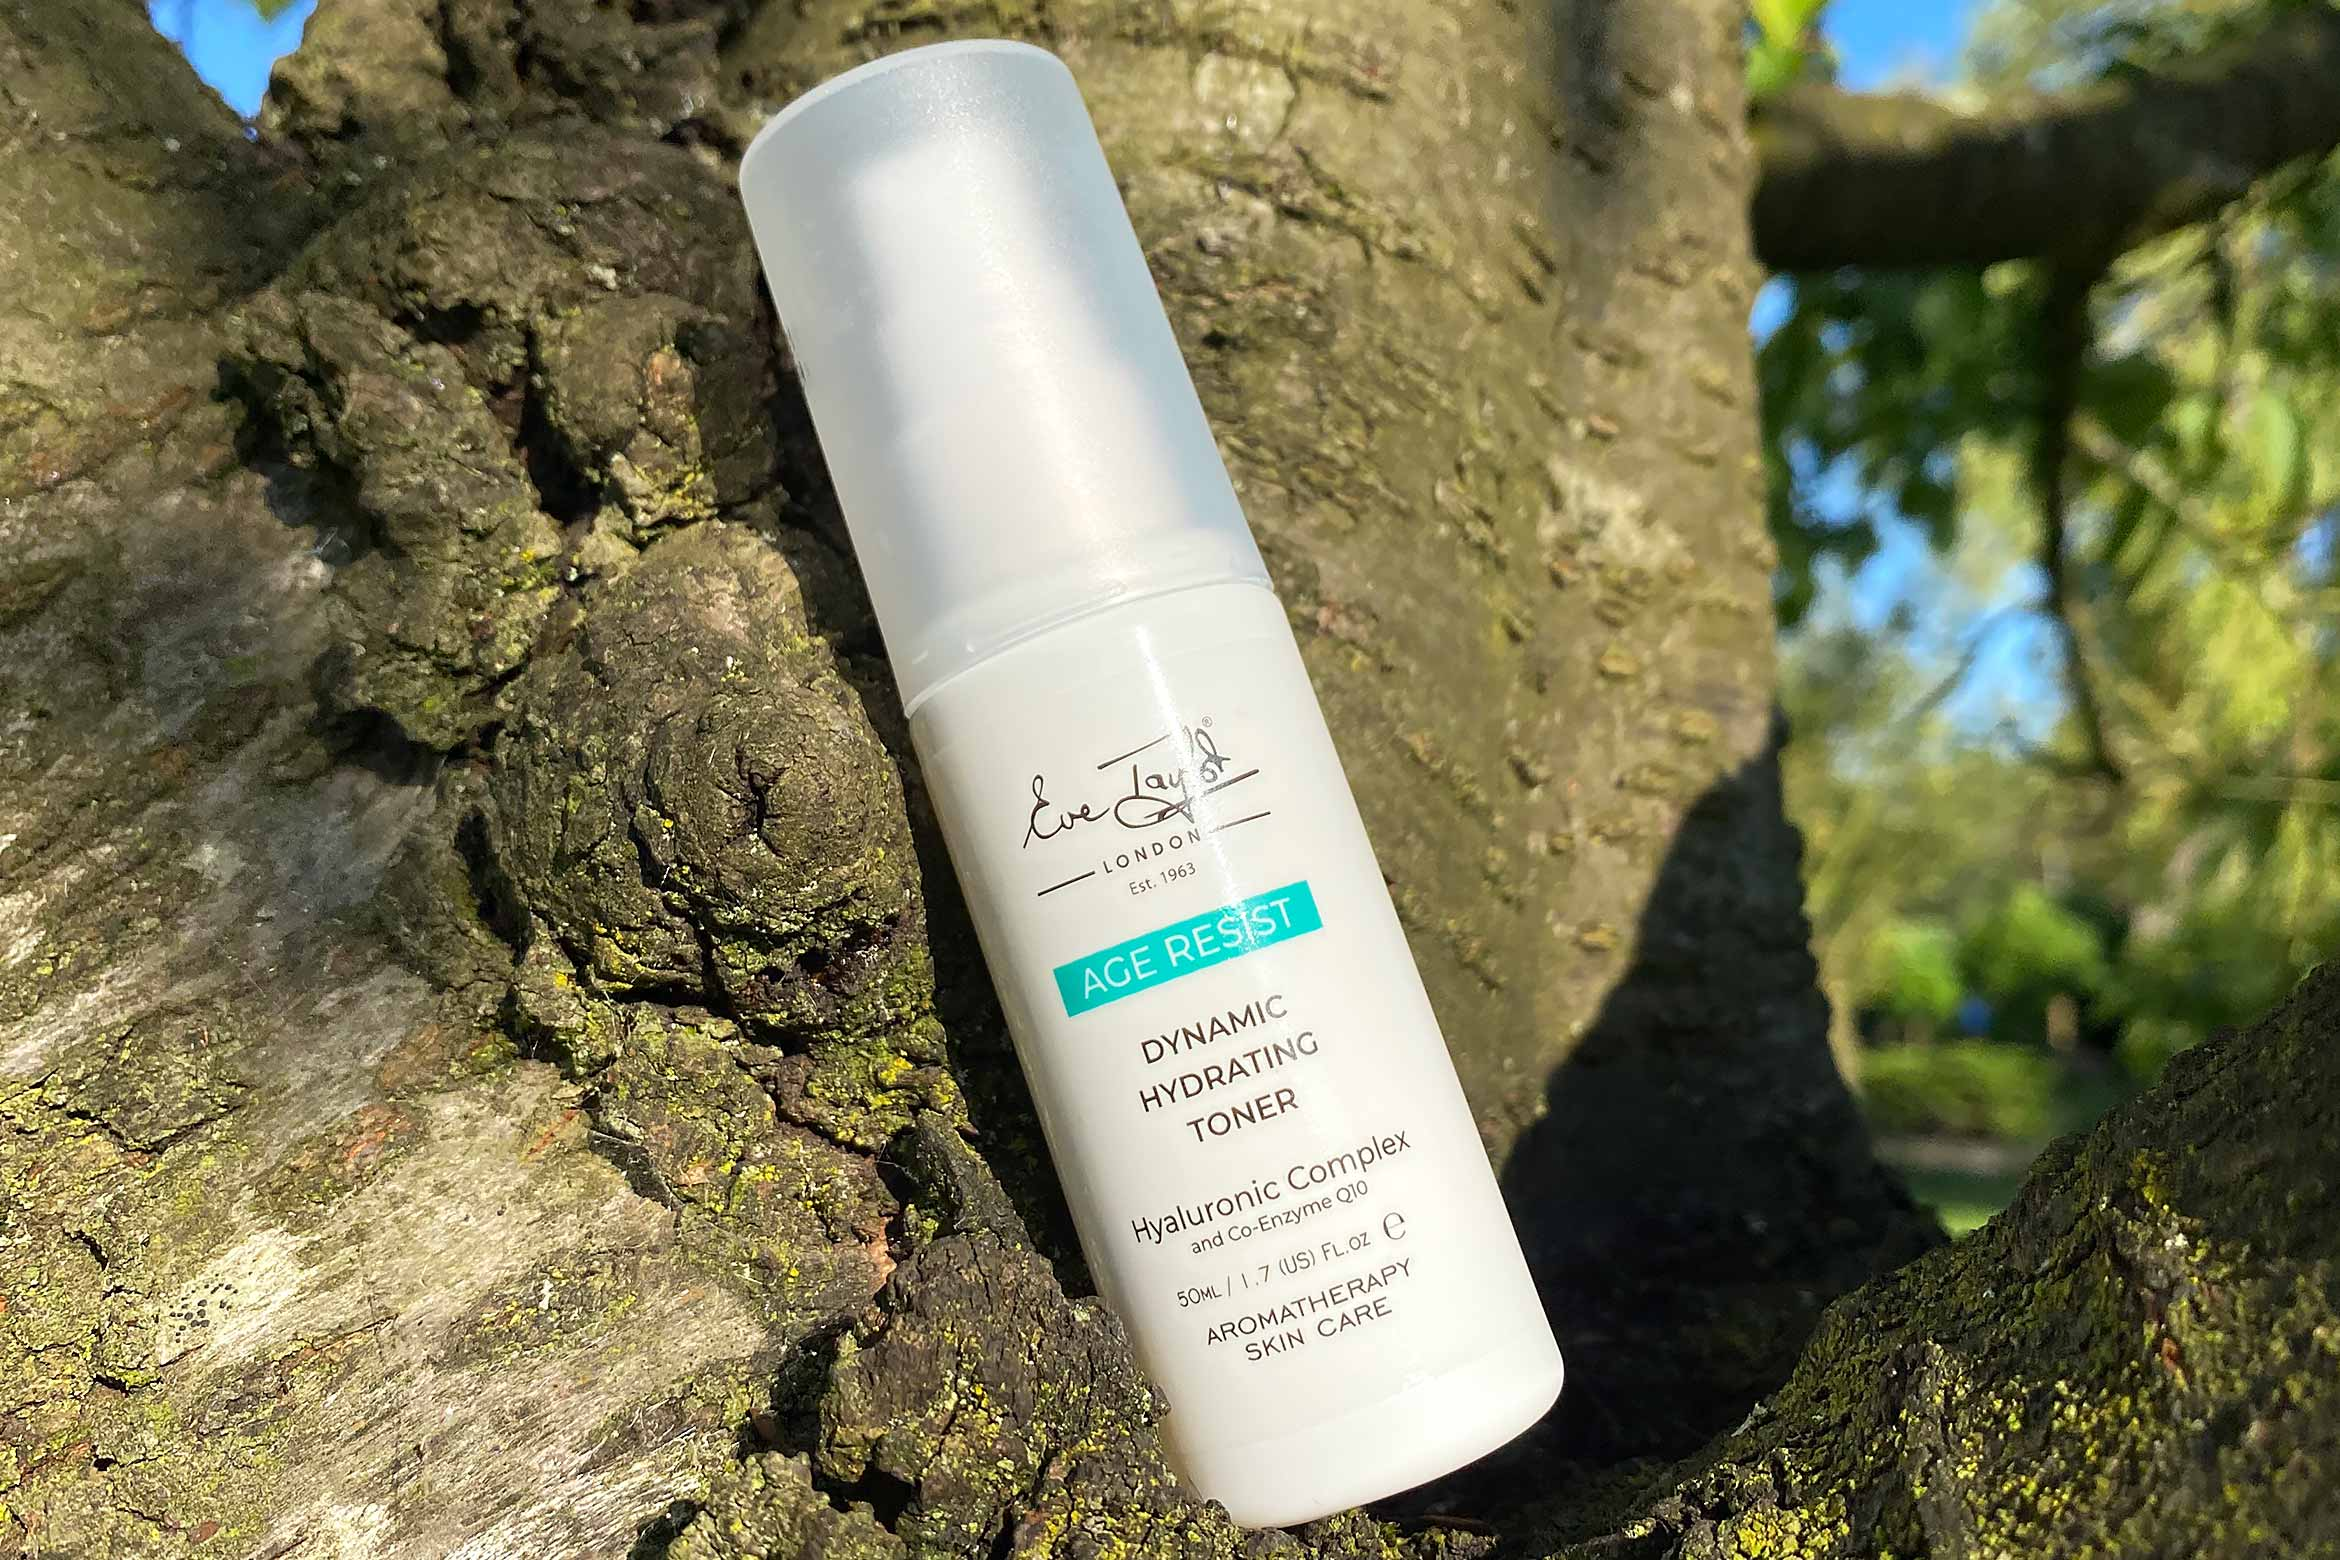 Eve Taylor Age Resist dynamic hydrating toner review